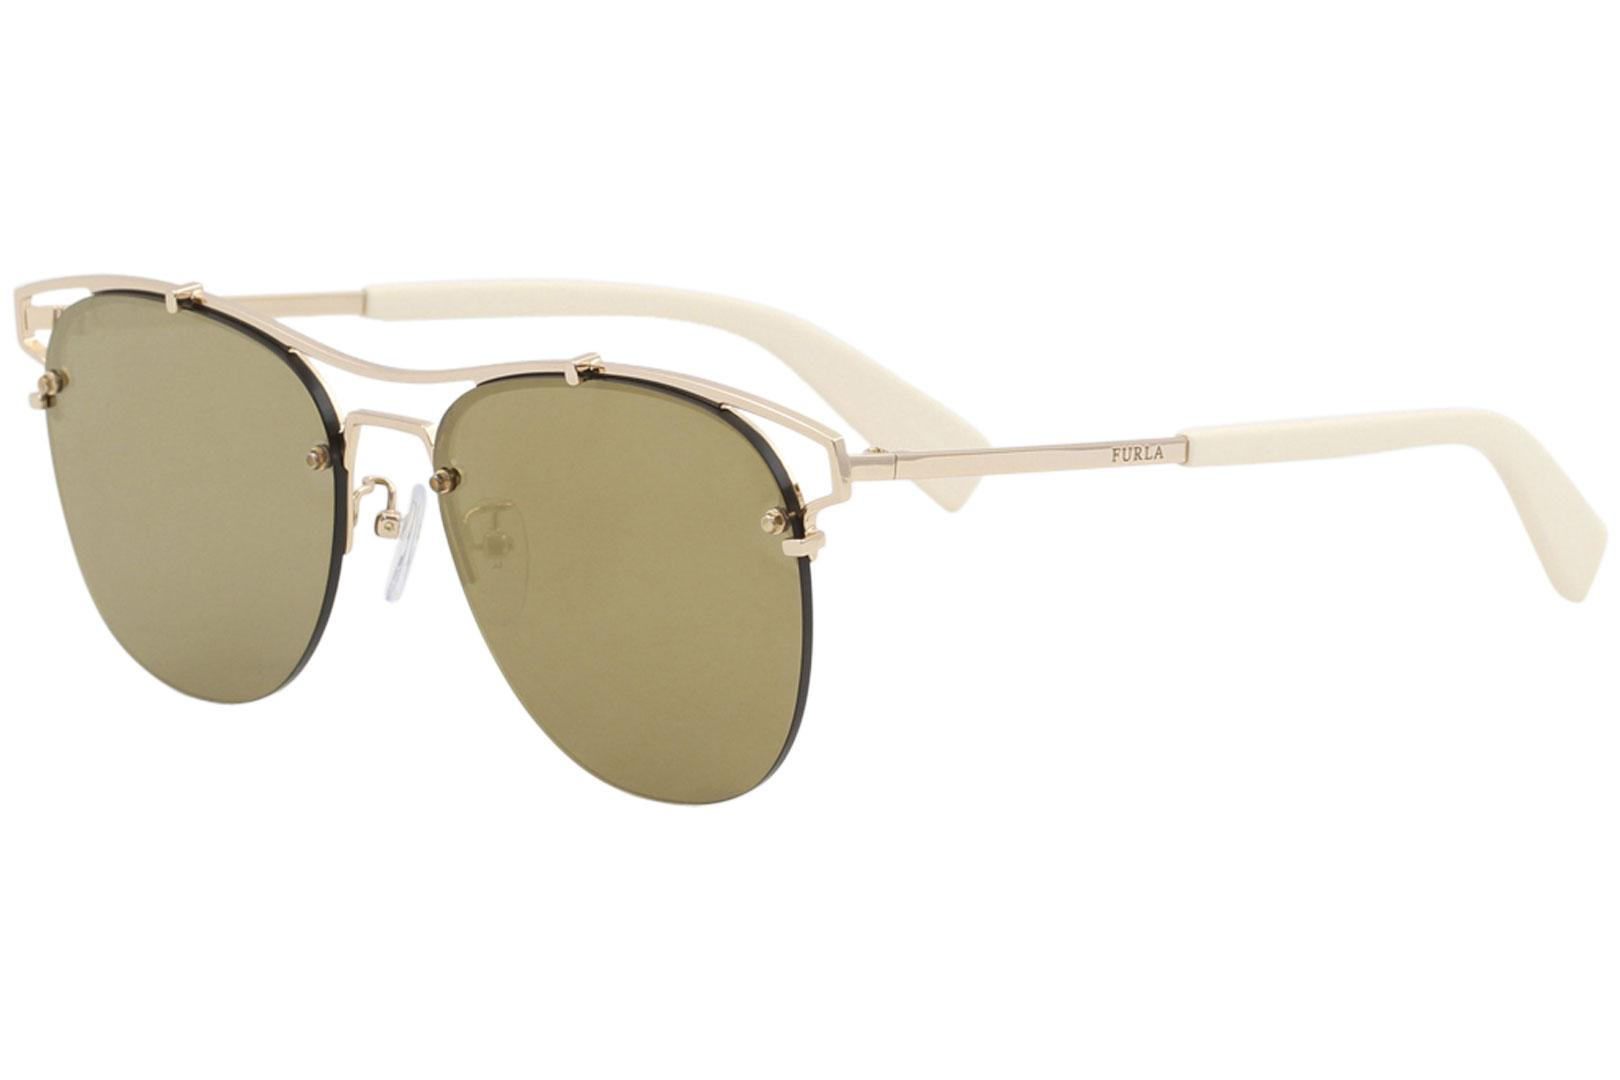 636de0a1bcca6 Furla Women s SFU106 SFU 106 Fashion Pilot Sunglasses by Furla. Touch to  zoom